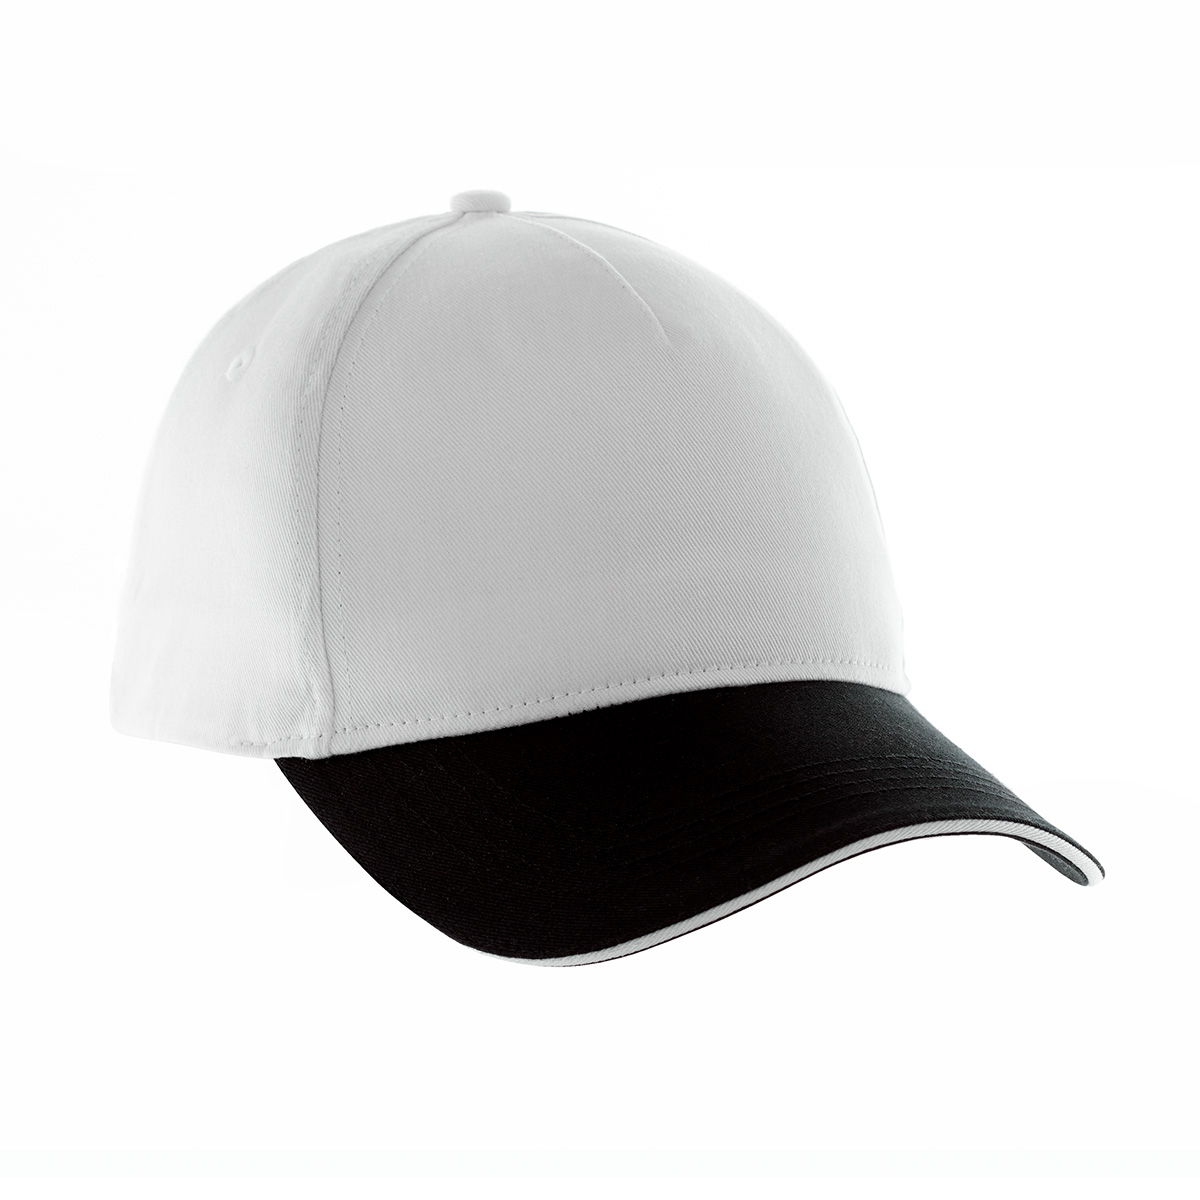 Galvanize Ballcap, #32029 - Embroidered